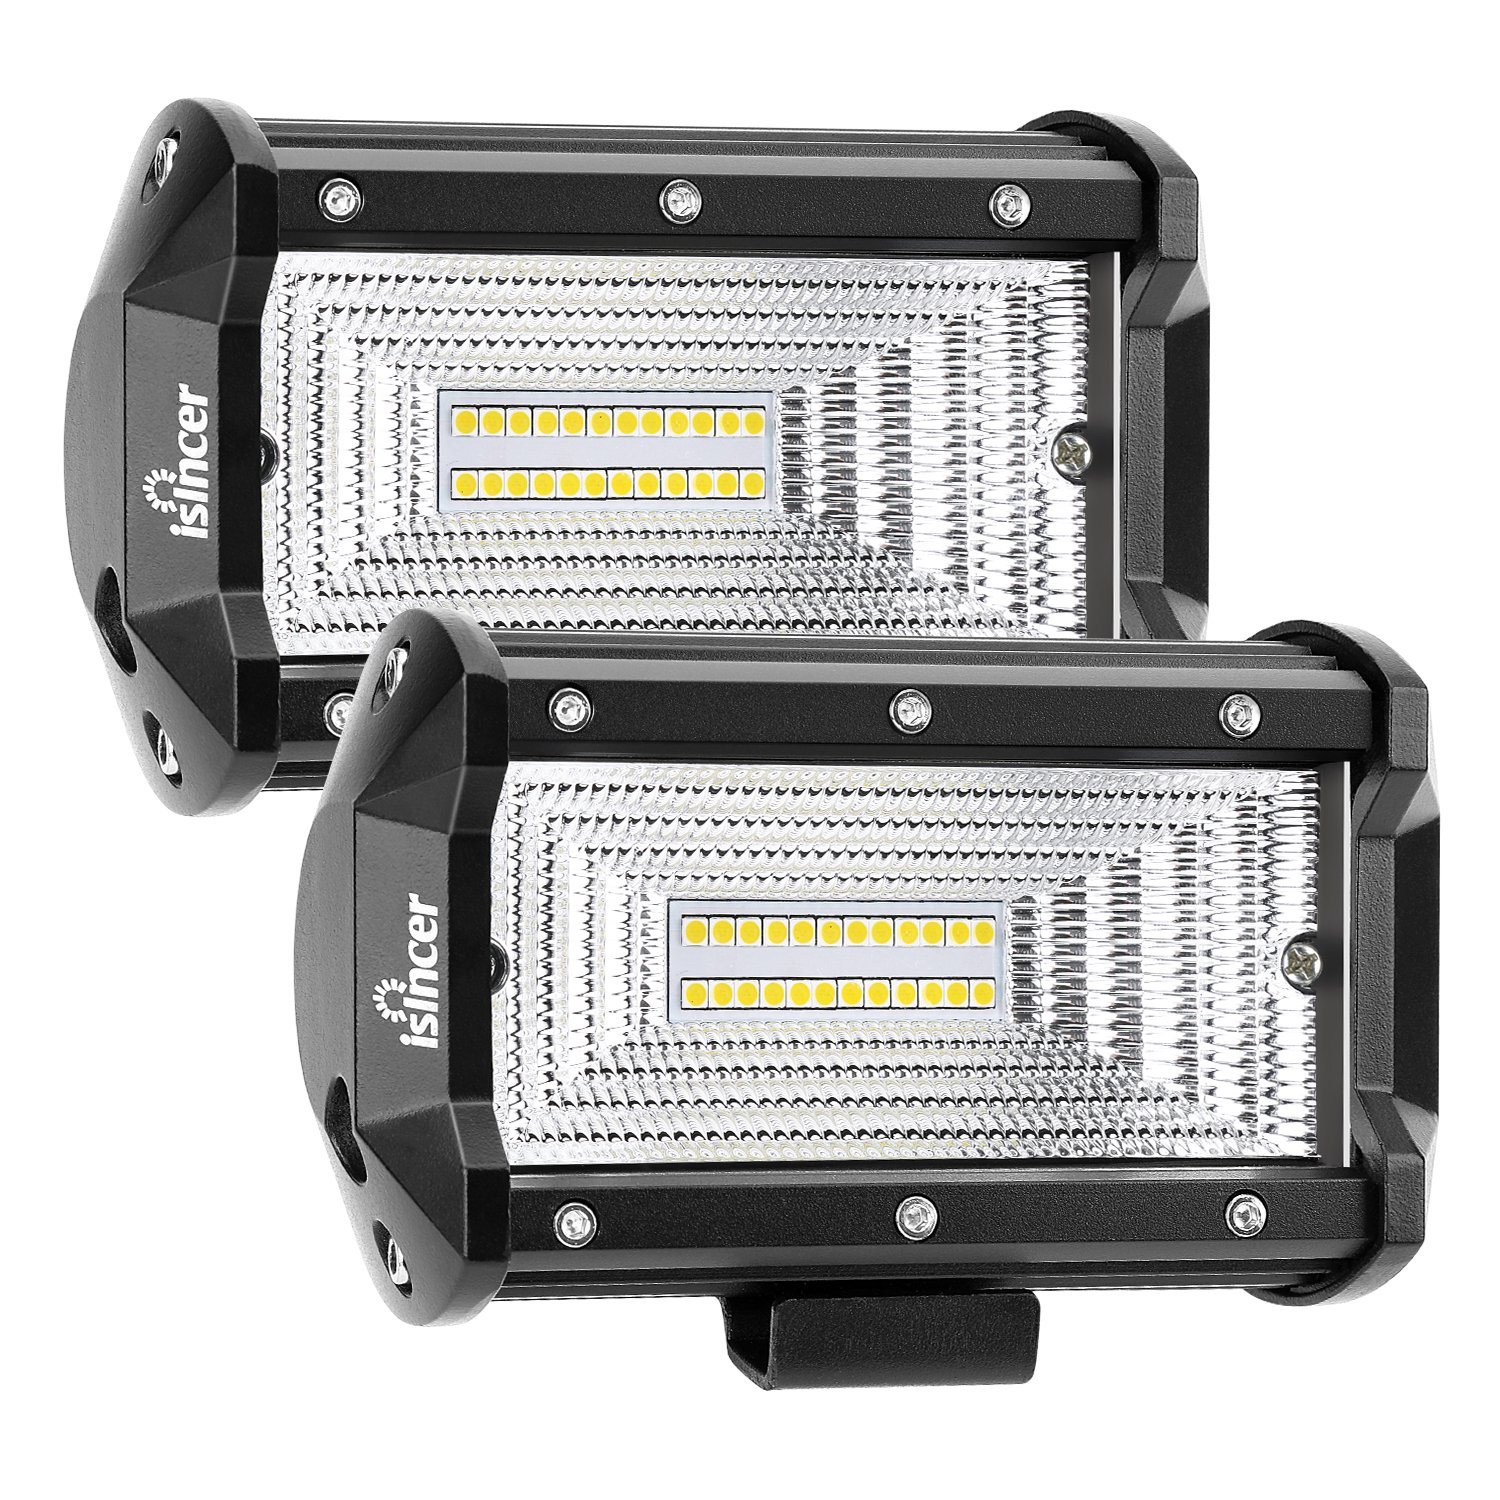 Flood Led Light Bar 2Pcs 72W 5 Inch Led Work Lights for Truck Waterproof Led Pods Car Led Driving Backup Lights for Off Road Jeep SUV Boat Motorcycle